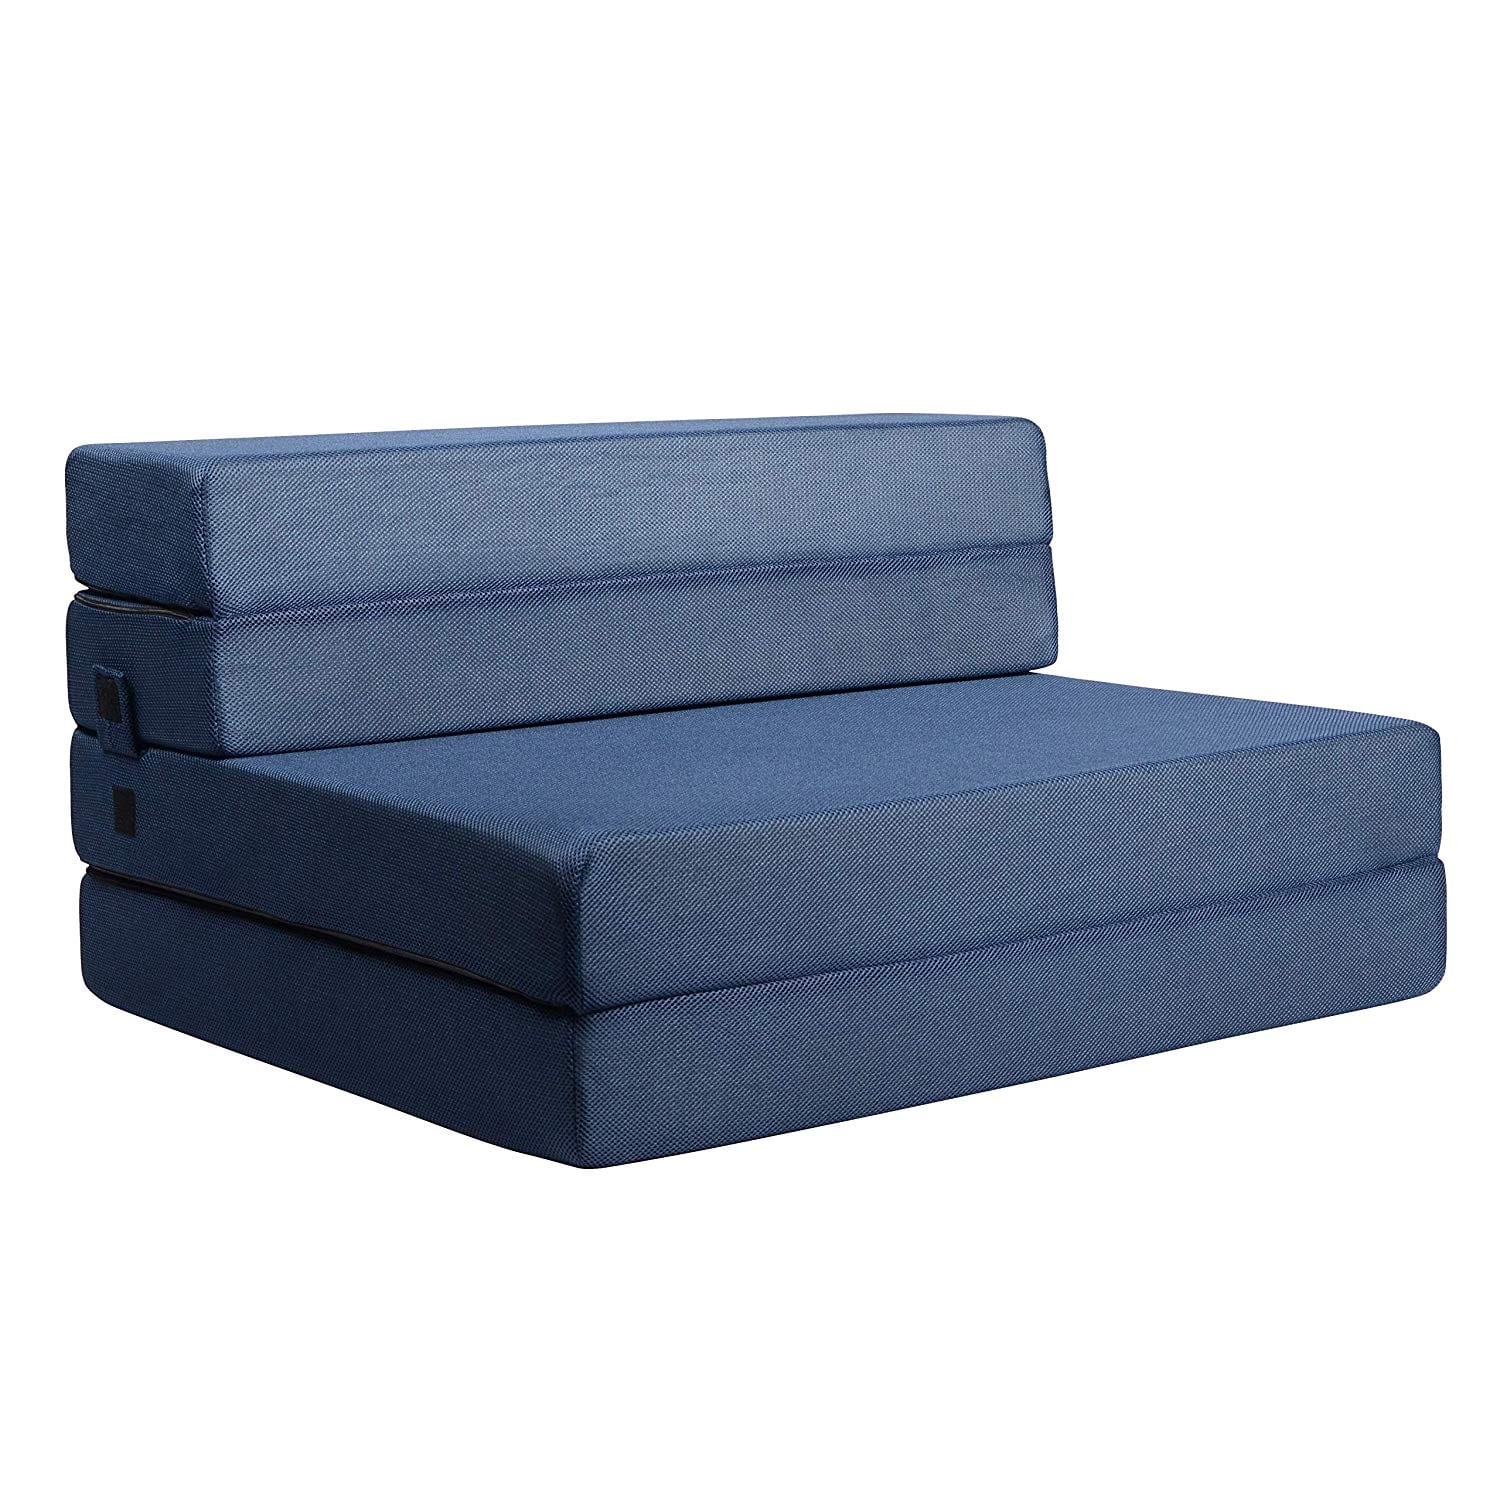 Japanese Futon Sets Floor Mattress Top Brands And Buying Guide For 2019 Snoremagazine